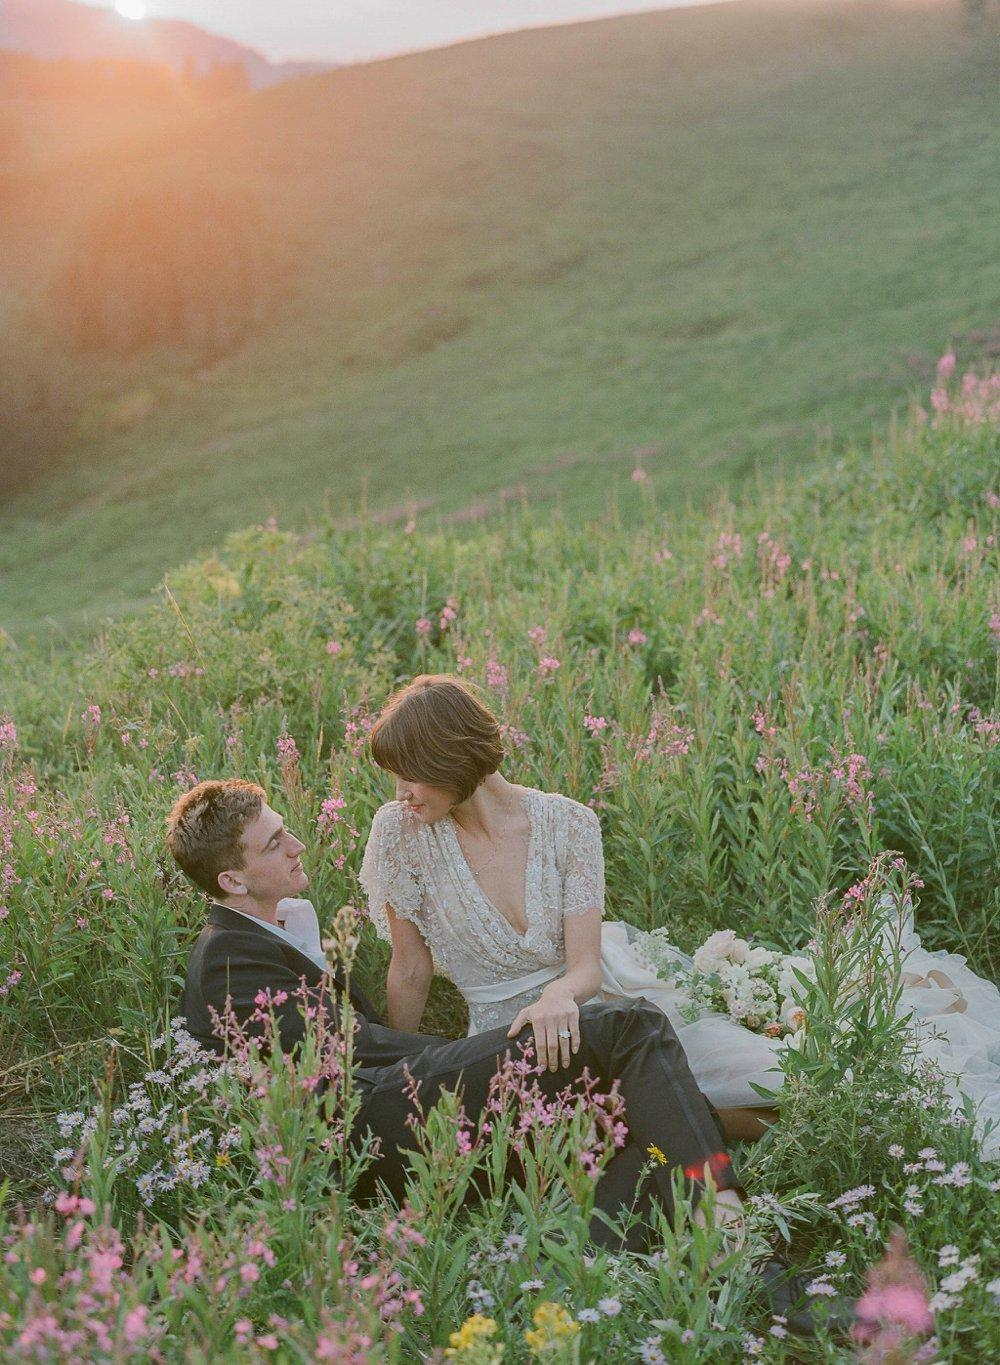 A cinematic shot featuring a couple surrounded by flowers and greenery - Laura Murray wedding photography metrics